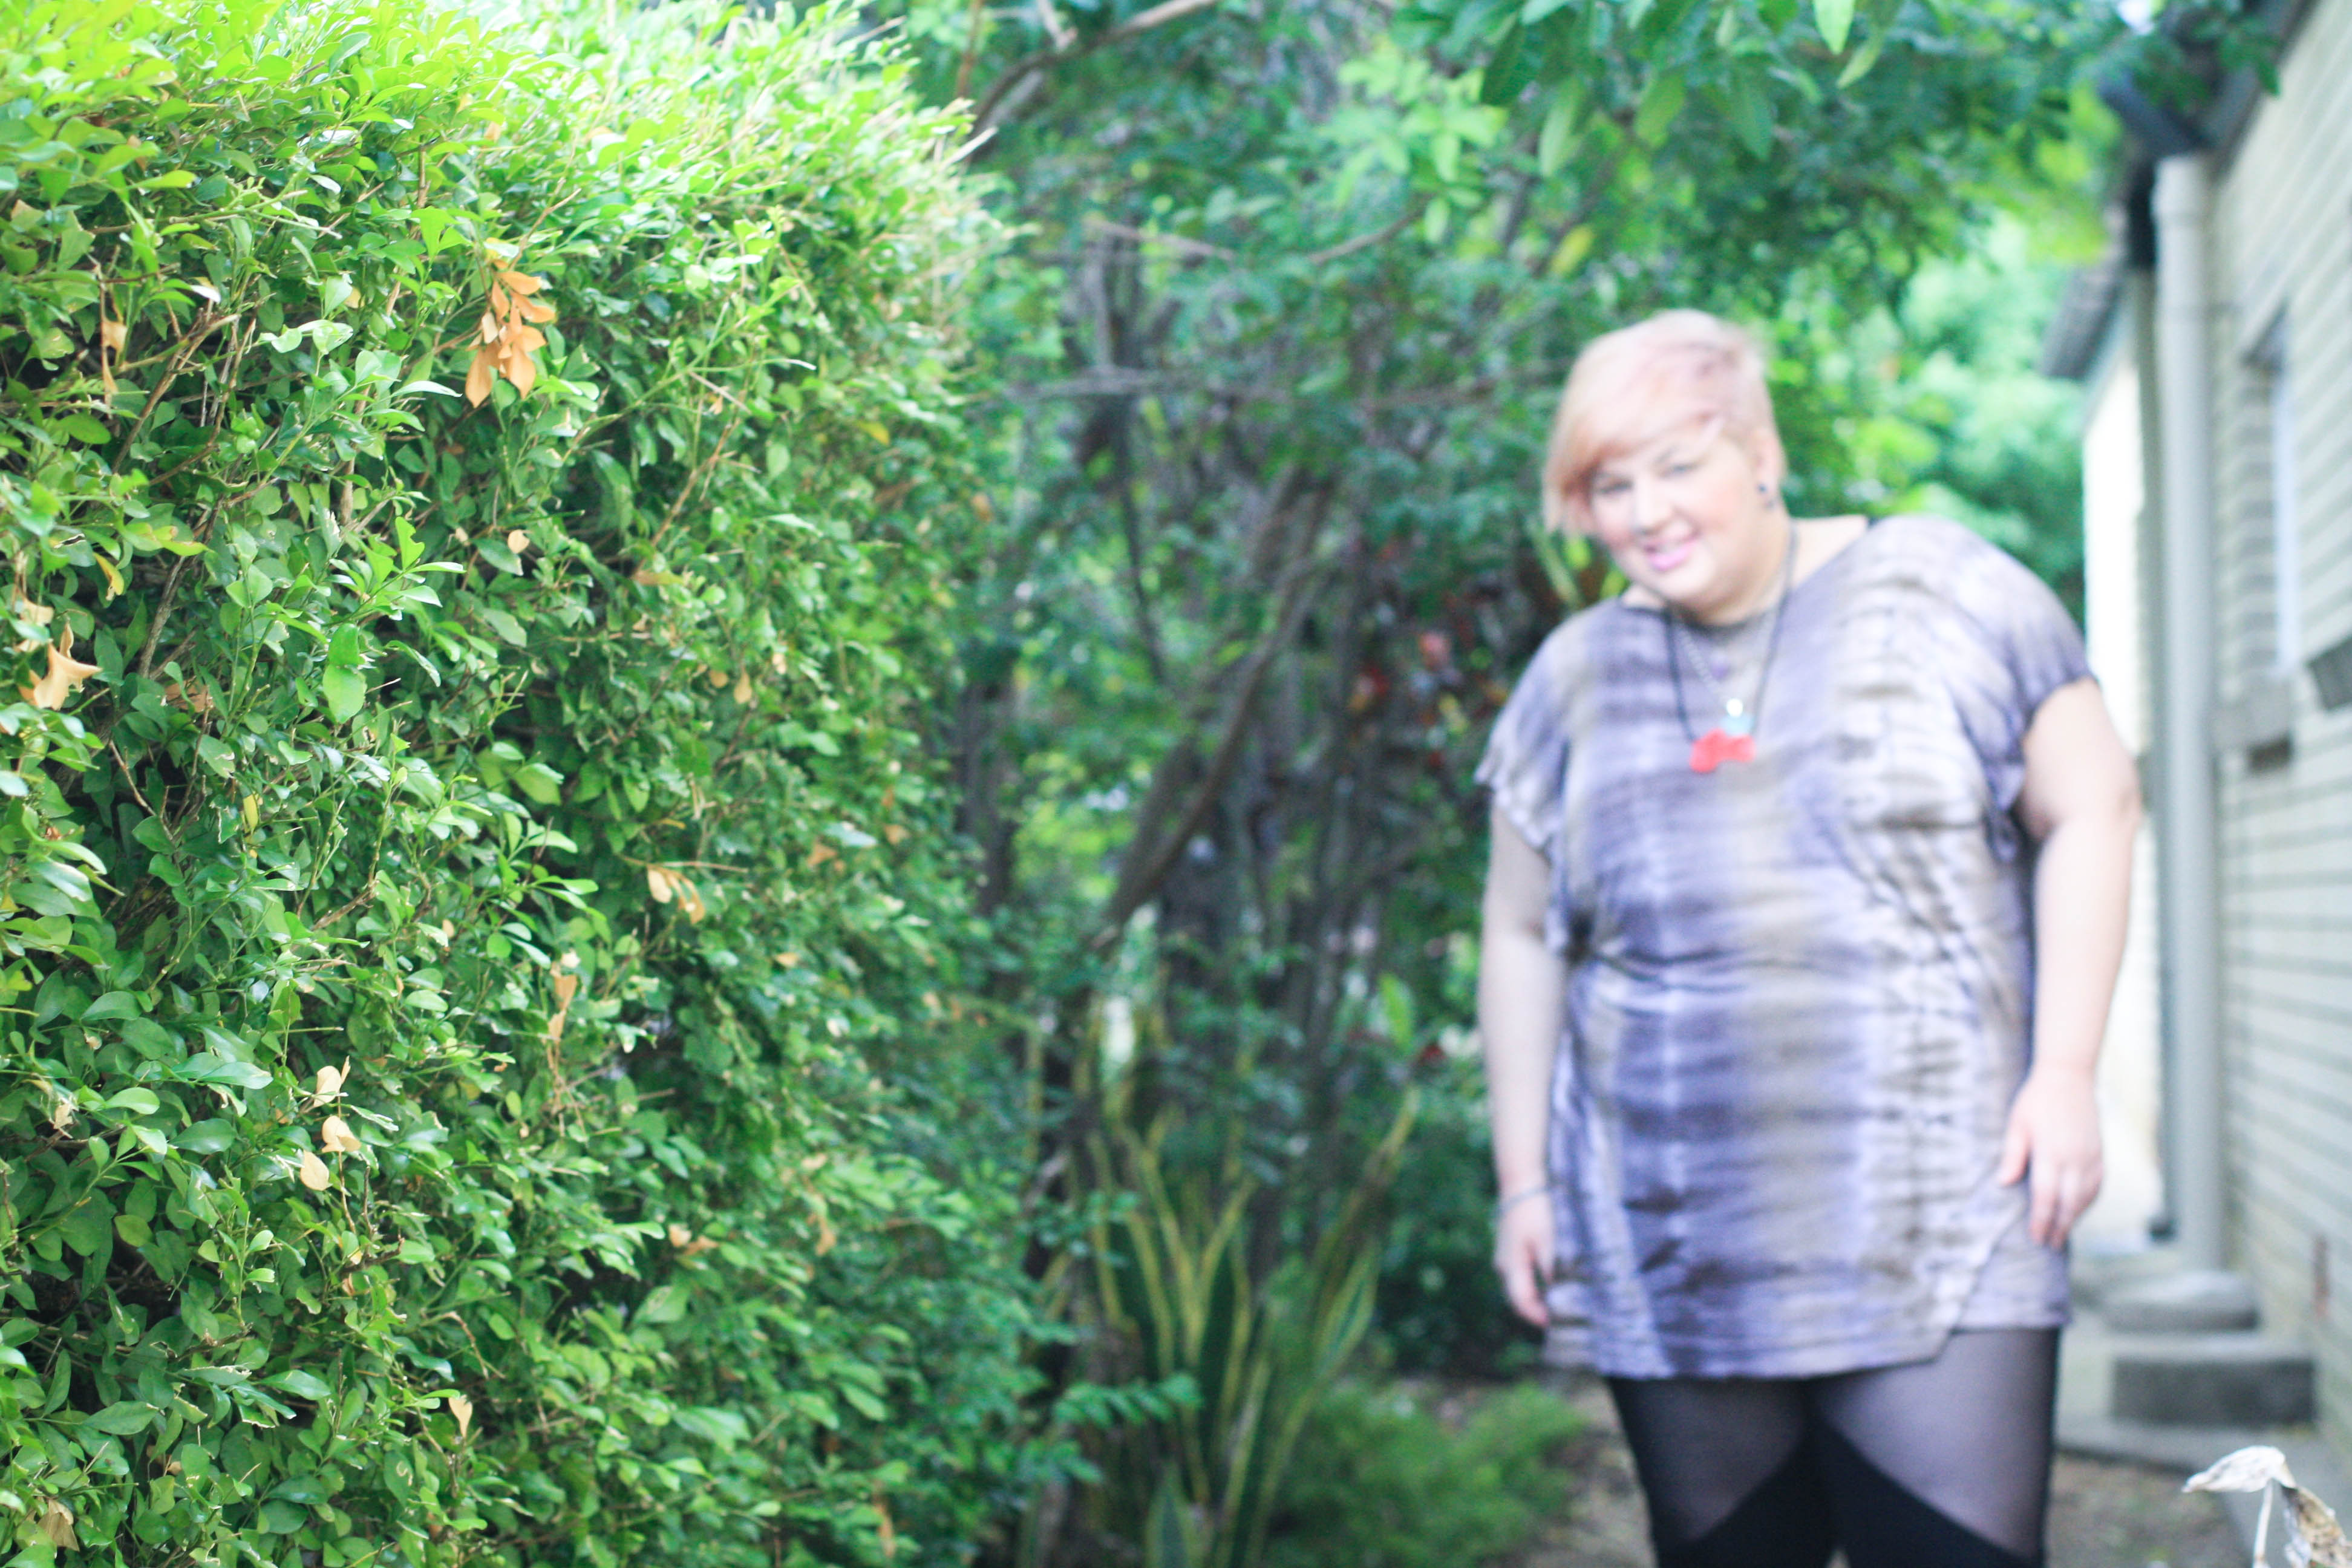 Photo of me, out of focus, standing next to a green hedge, which is in focus,